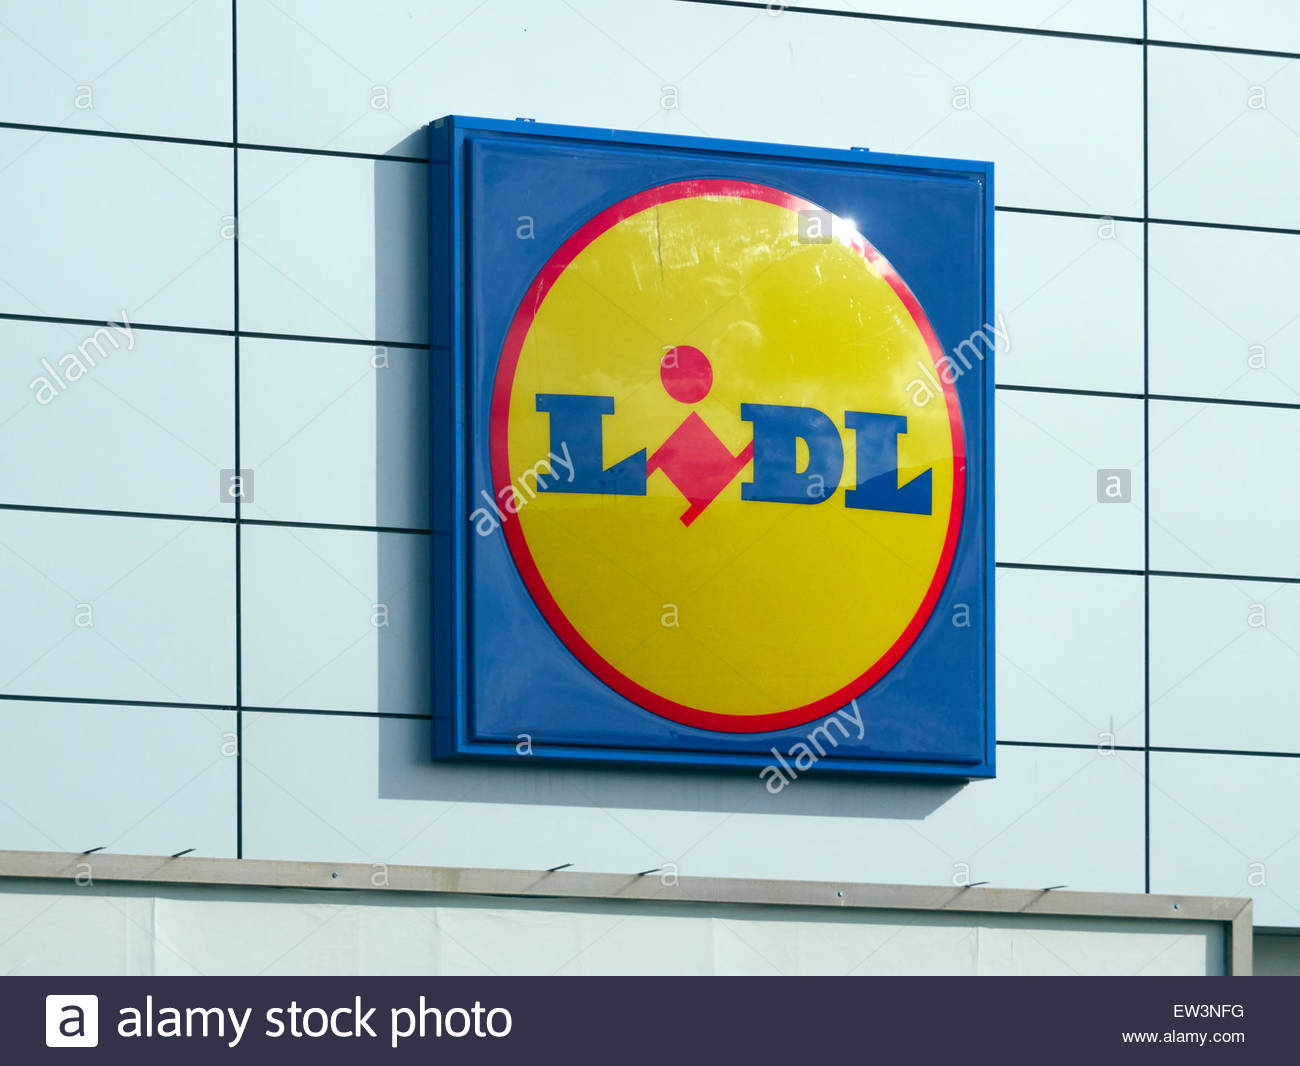 the blue red and yellow sign of the Lidl supermarket logo - Stock Image